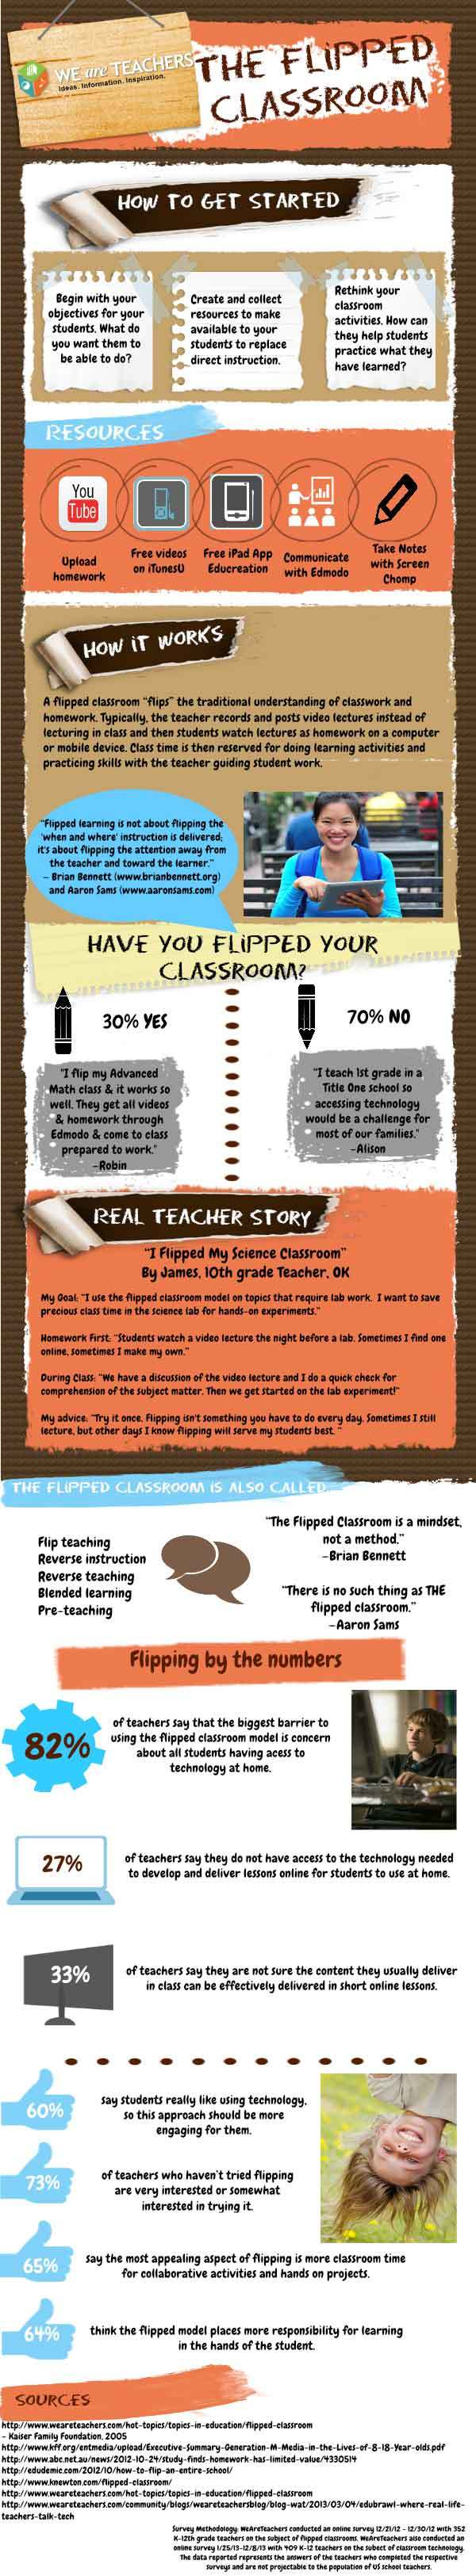 Flipping the Classroom Infographic